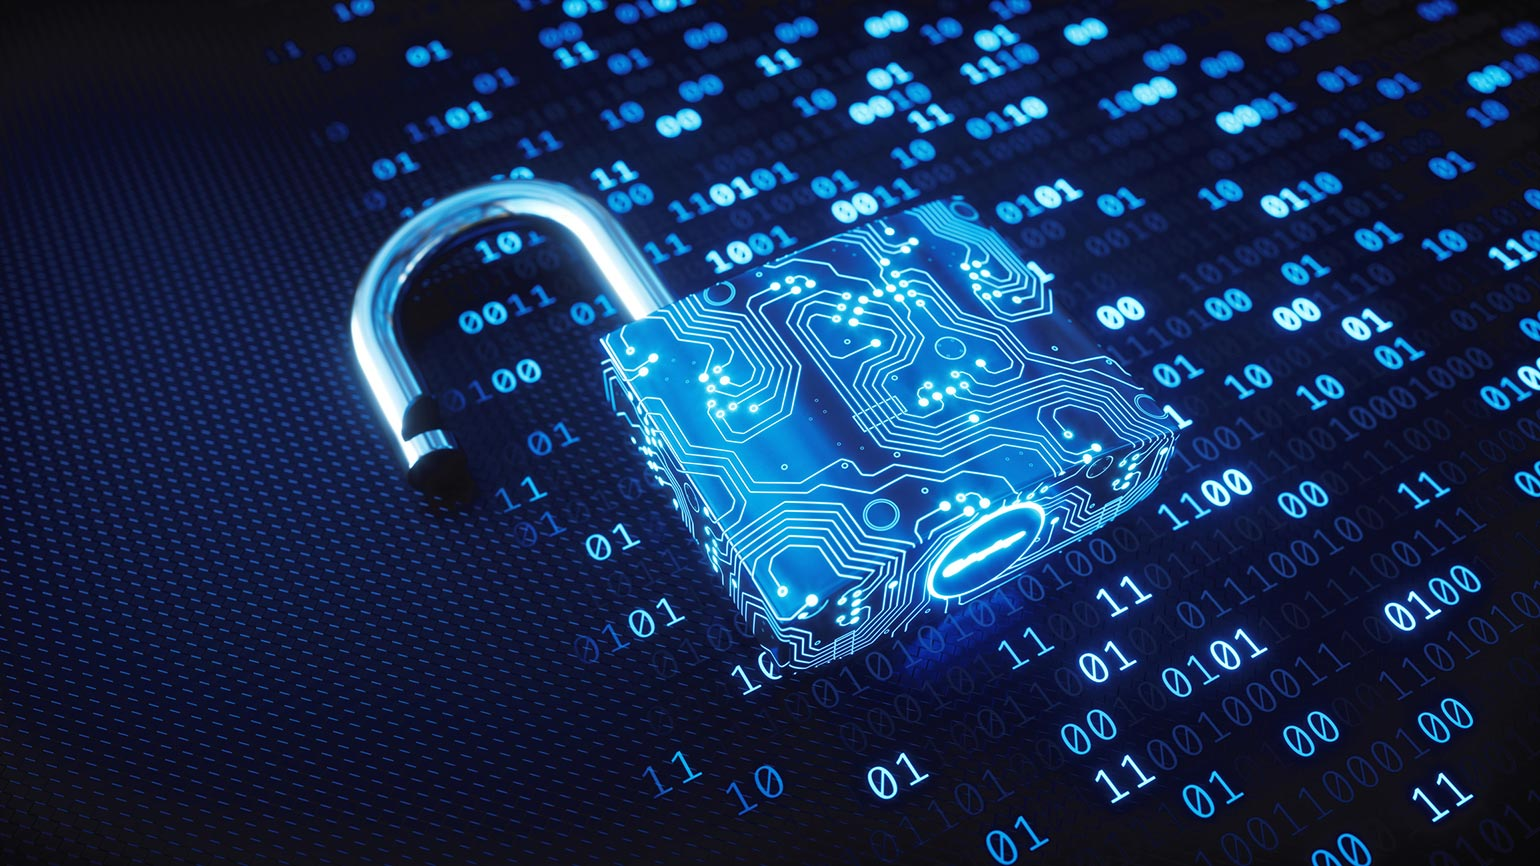 IoT Device Security: Risk Assessment, Hygiene Are Key